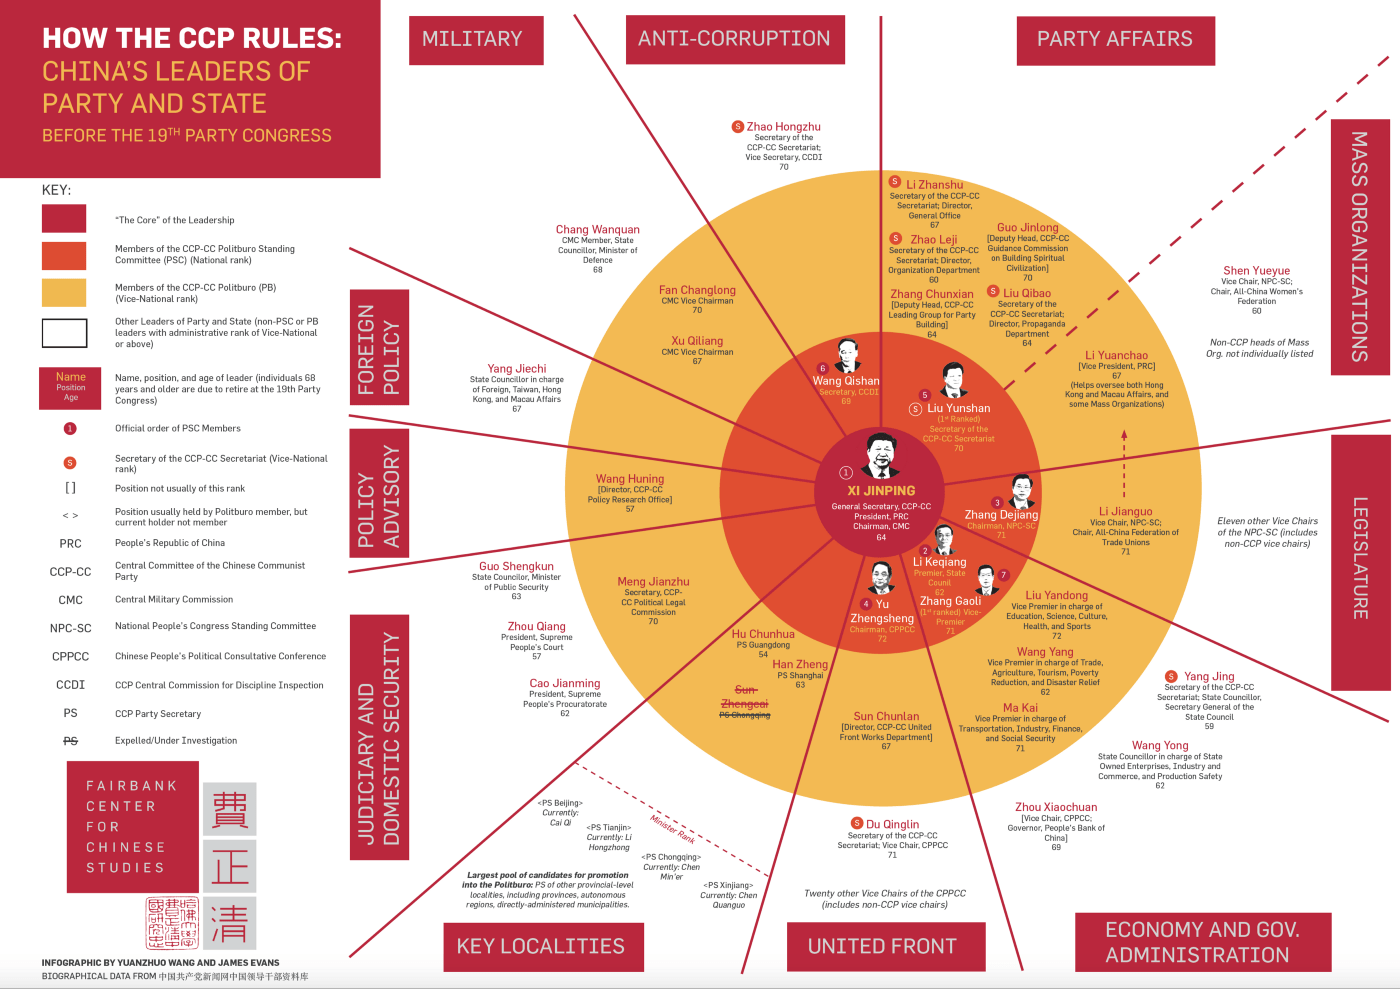 hight resolution of a pre 19th party congress look at china s leaders of party and state see our previous blog post and infographic for a brief overview of the 18th politburo